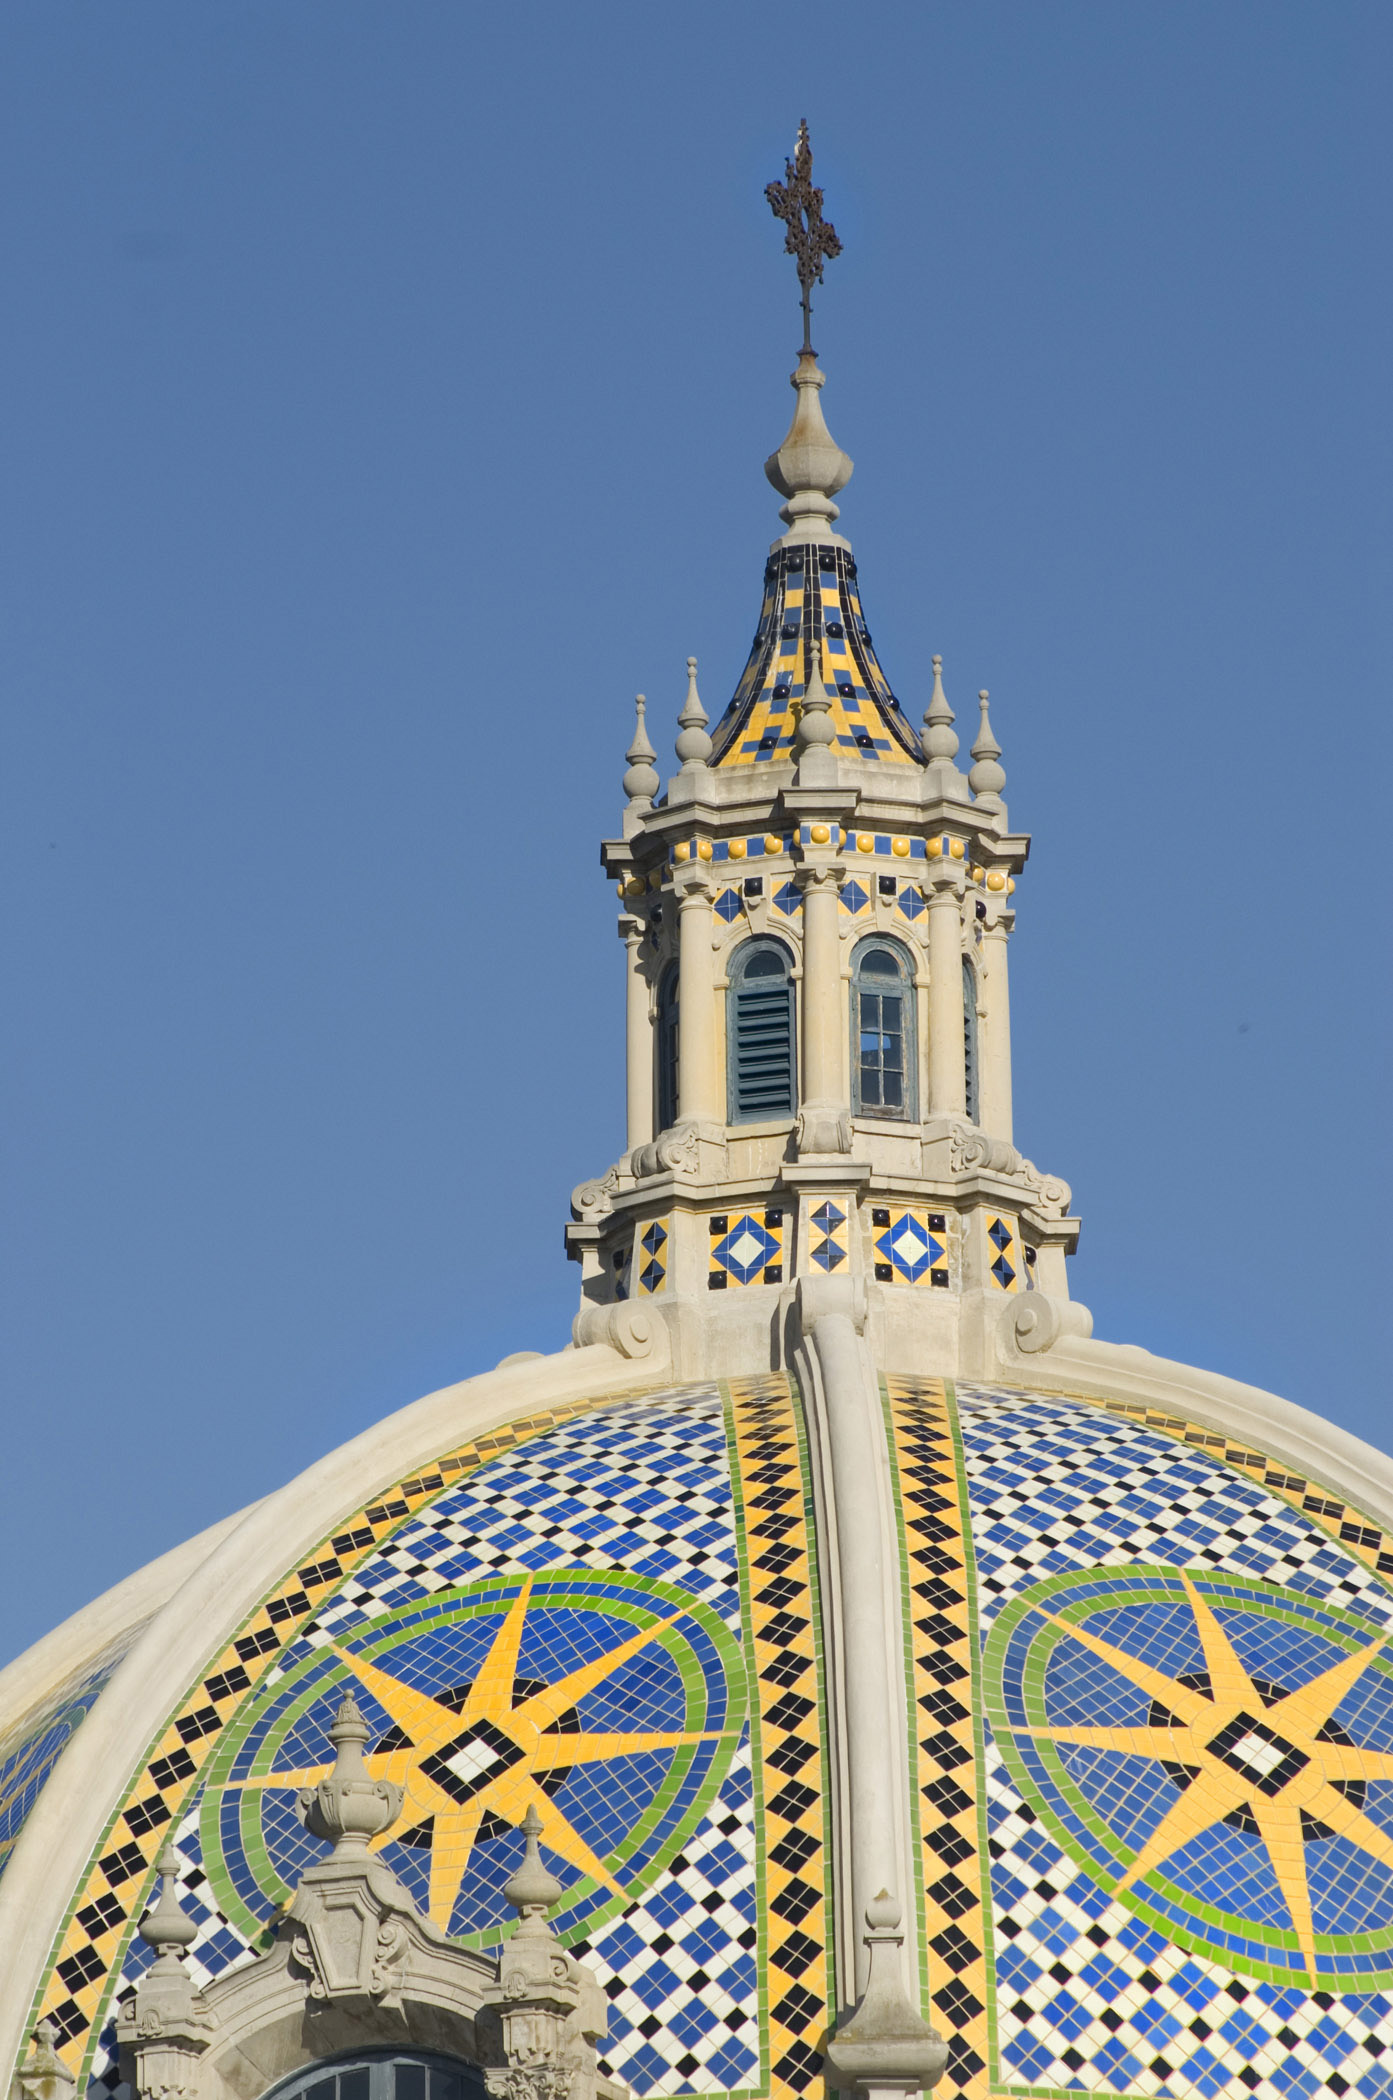 Close up Artistic California Dome with Mosaic Tiles at Balboa Park San Diego. Isolated on Blue Sky.